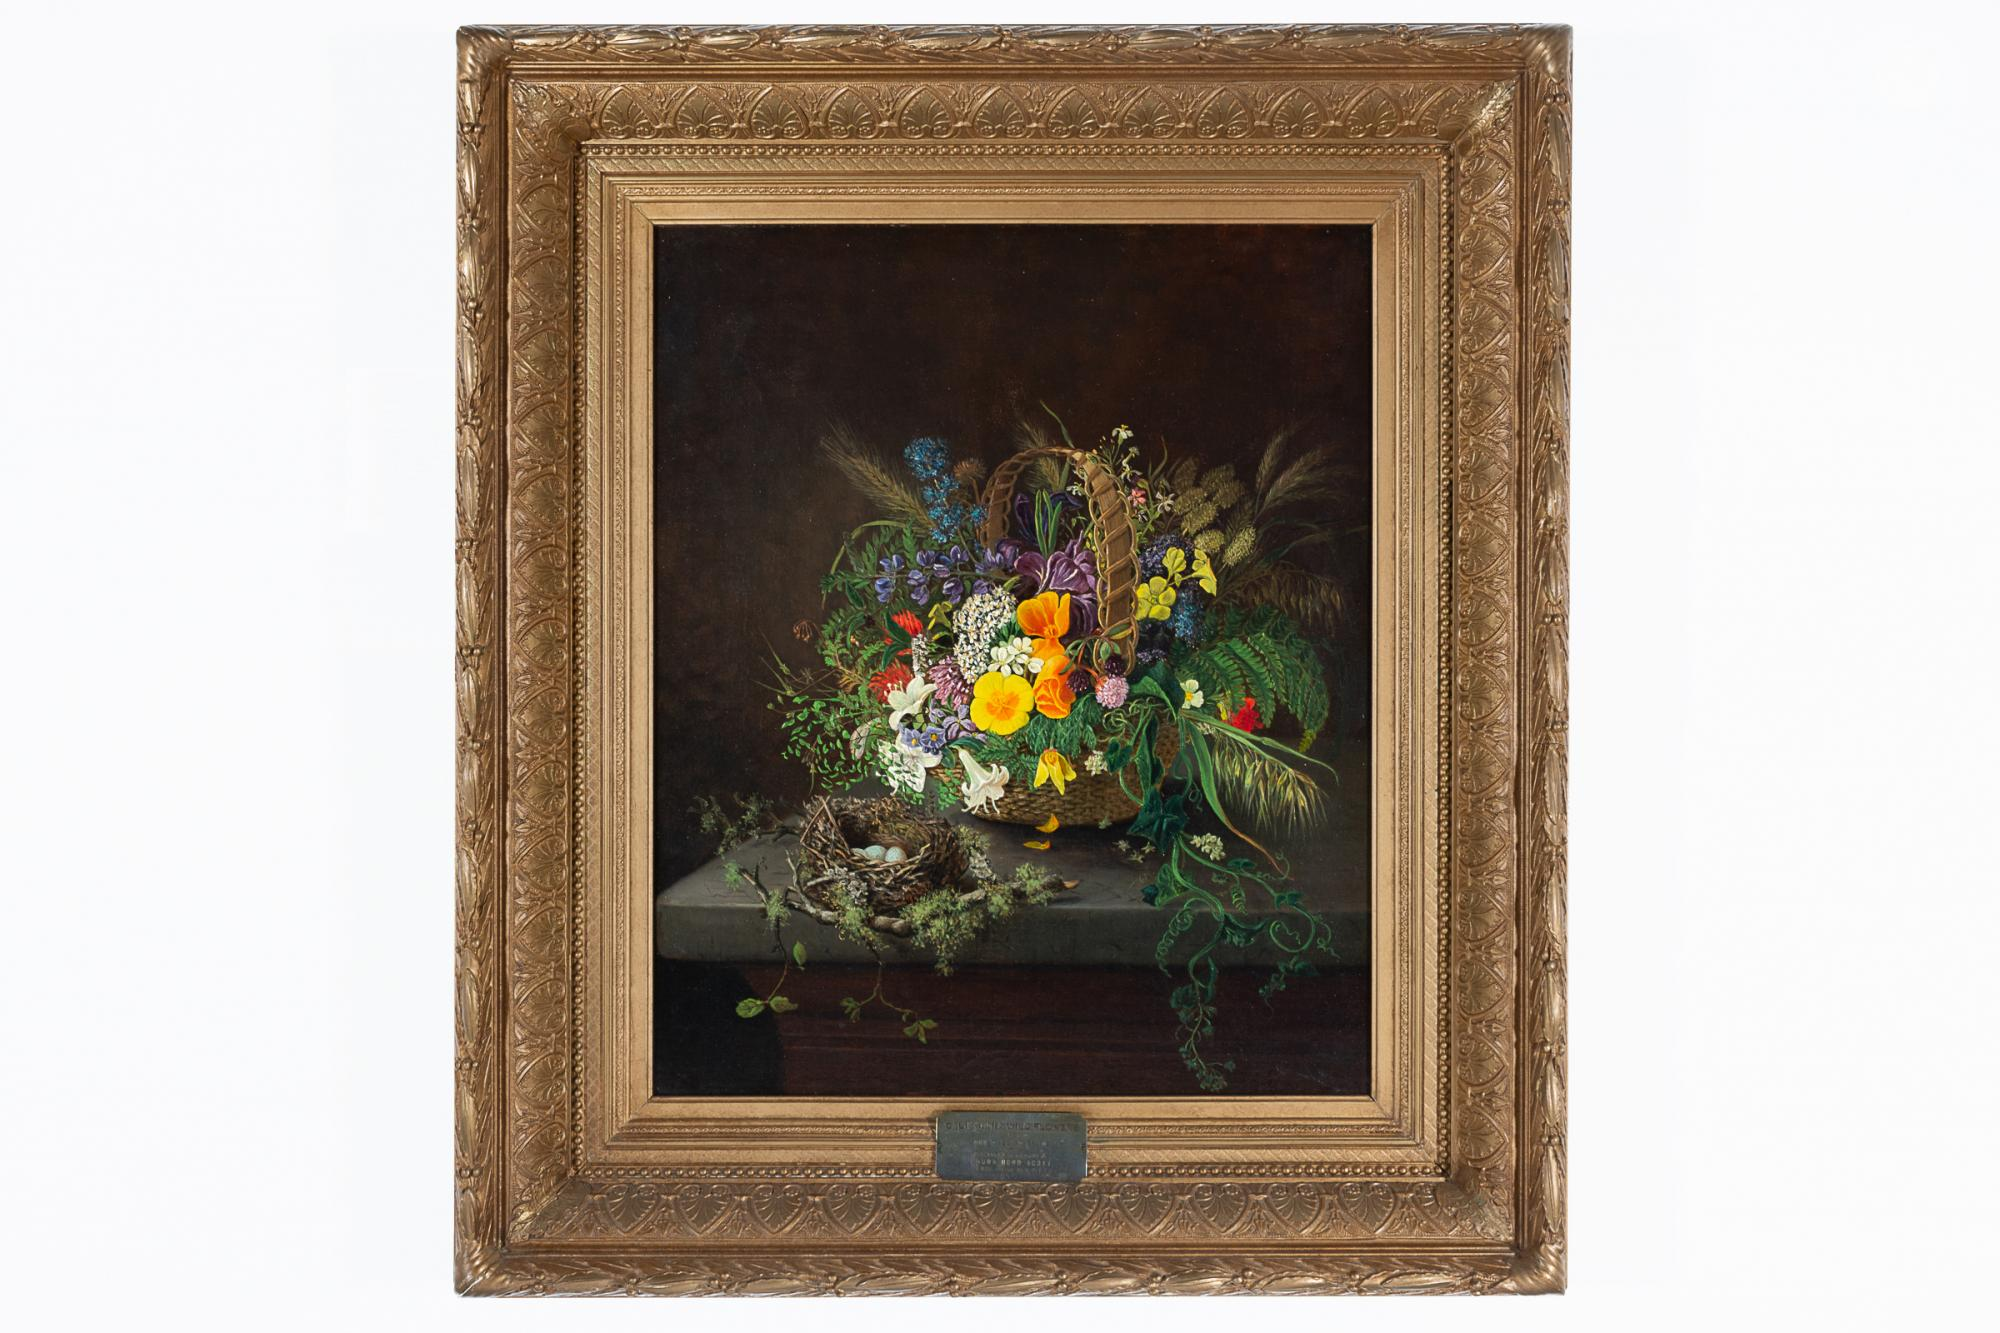 Elizabeth Emerson Keith, United States, 1838-1882. California Wildflowers, 1872. Oil on canvas. Gift of Alice Scott-Knight in memory of Laura Hood Scott; conservation treatment sponsored by Mr. and Mrs. Valentine Brookes. 2015.7